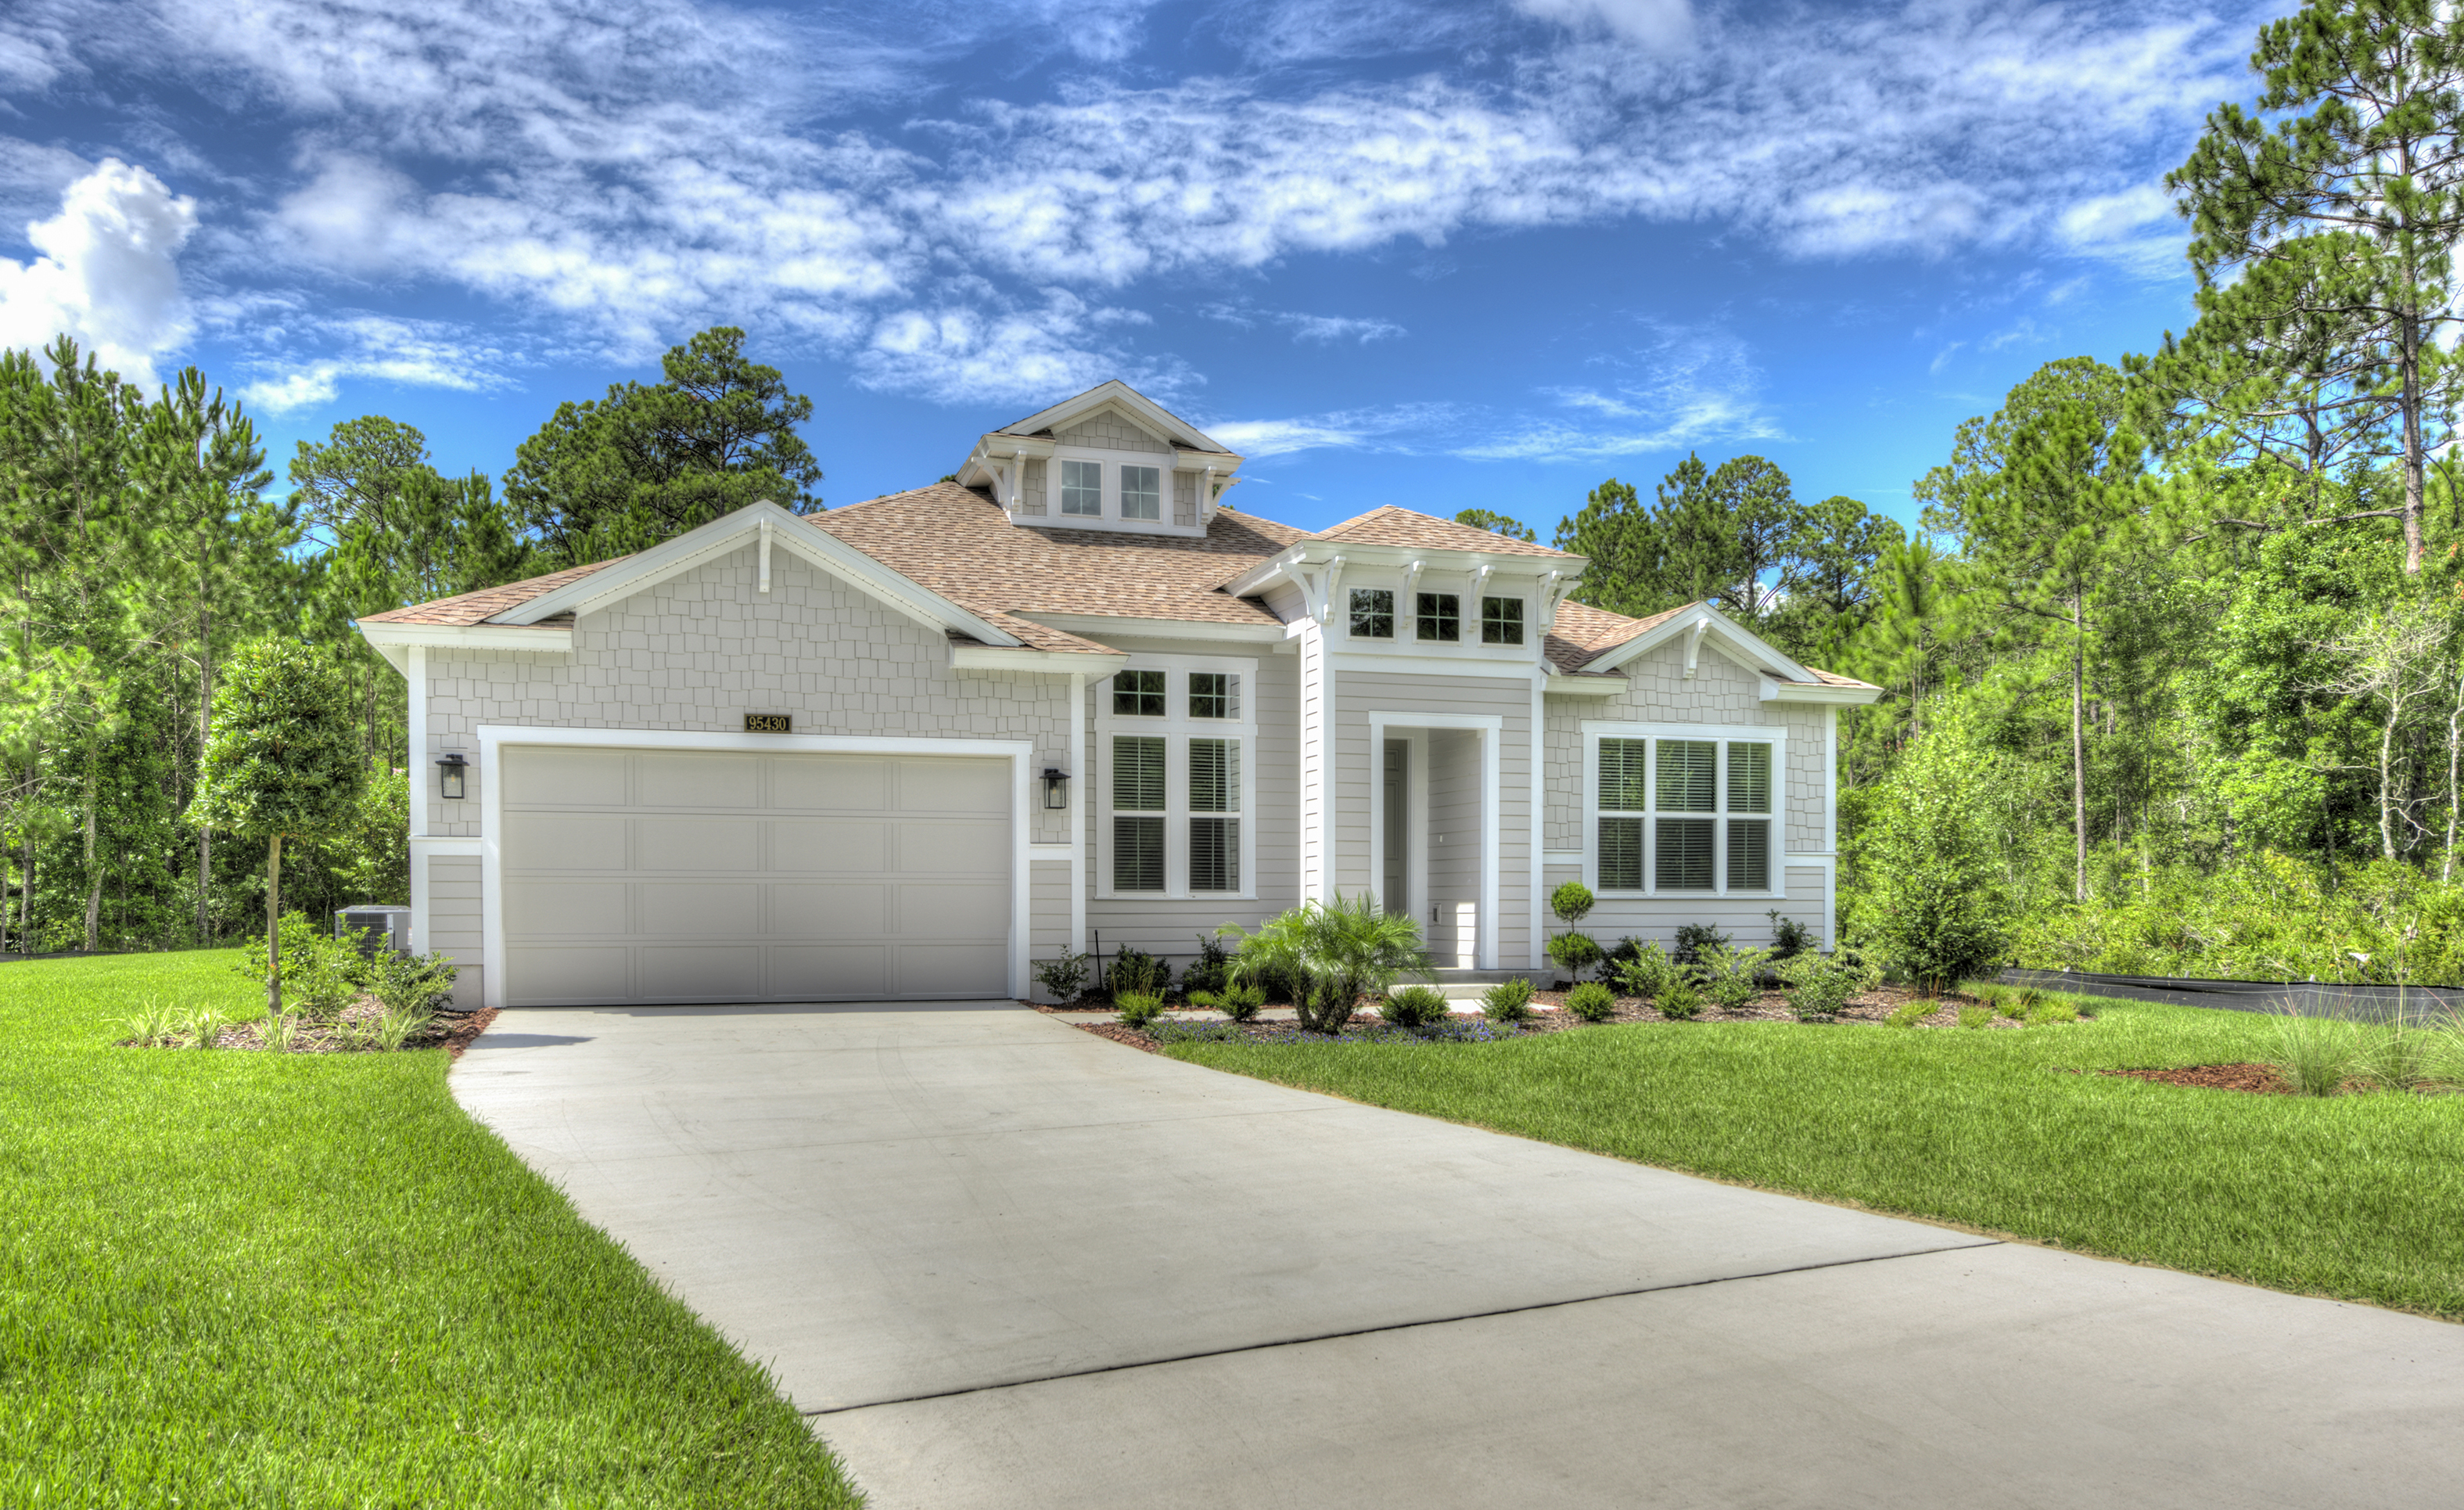 95430 Amelia National Pkwy, Fernandina Beach FL